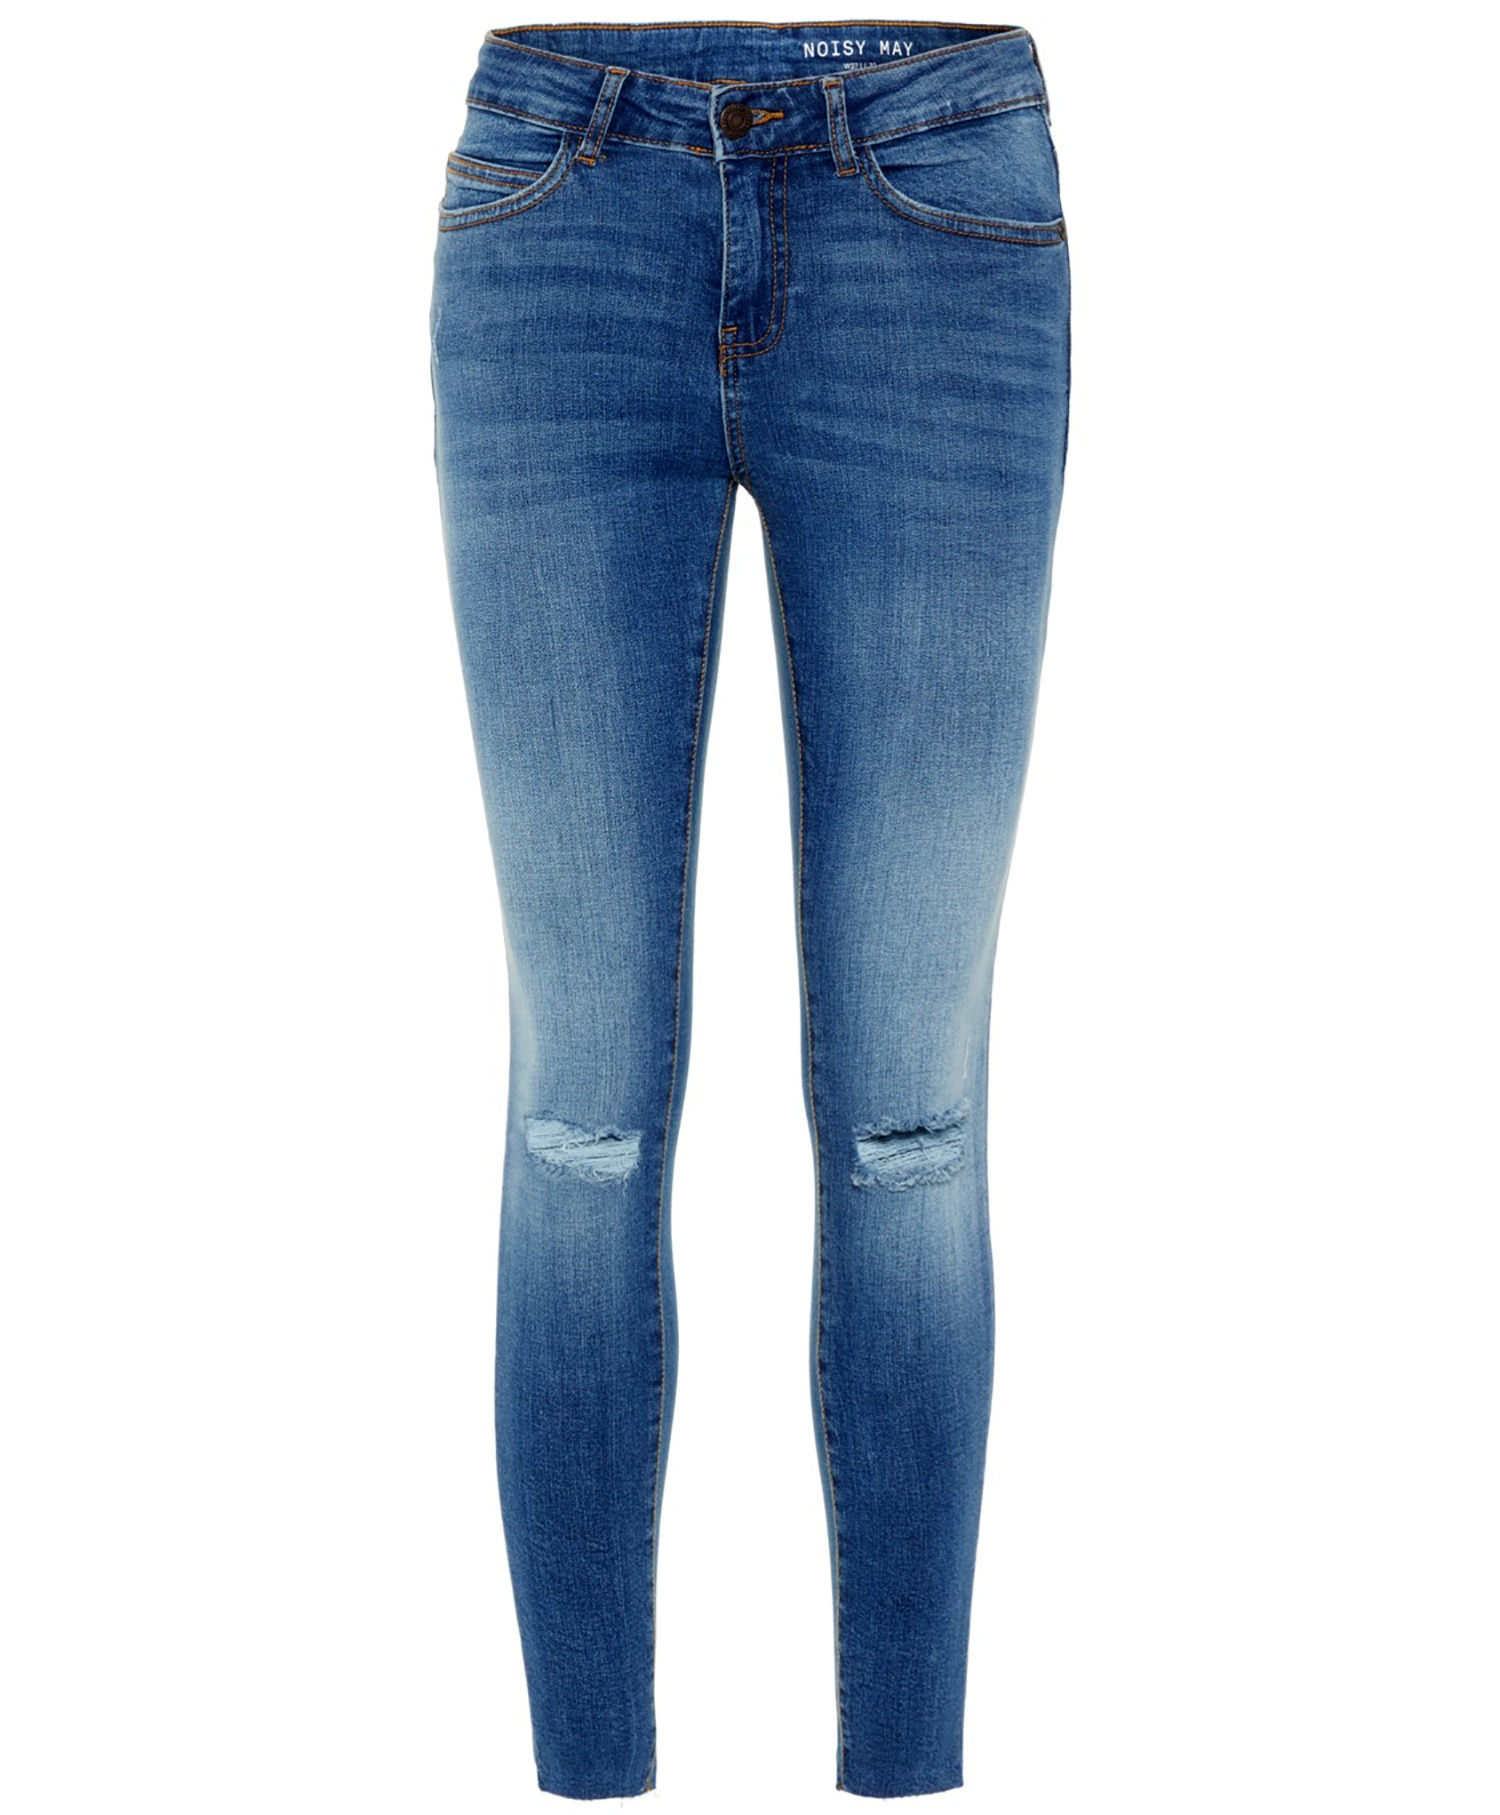 Noisy May LUCY ANK JEANS